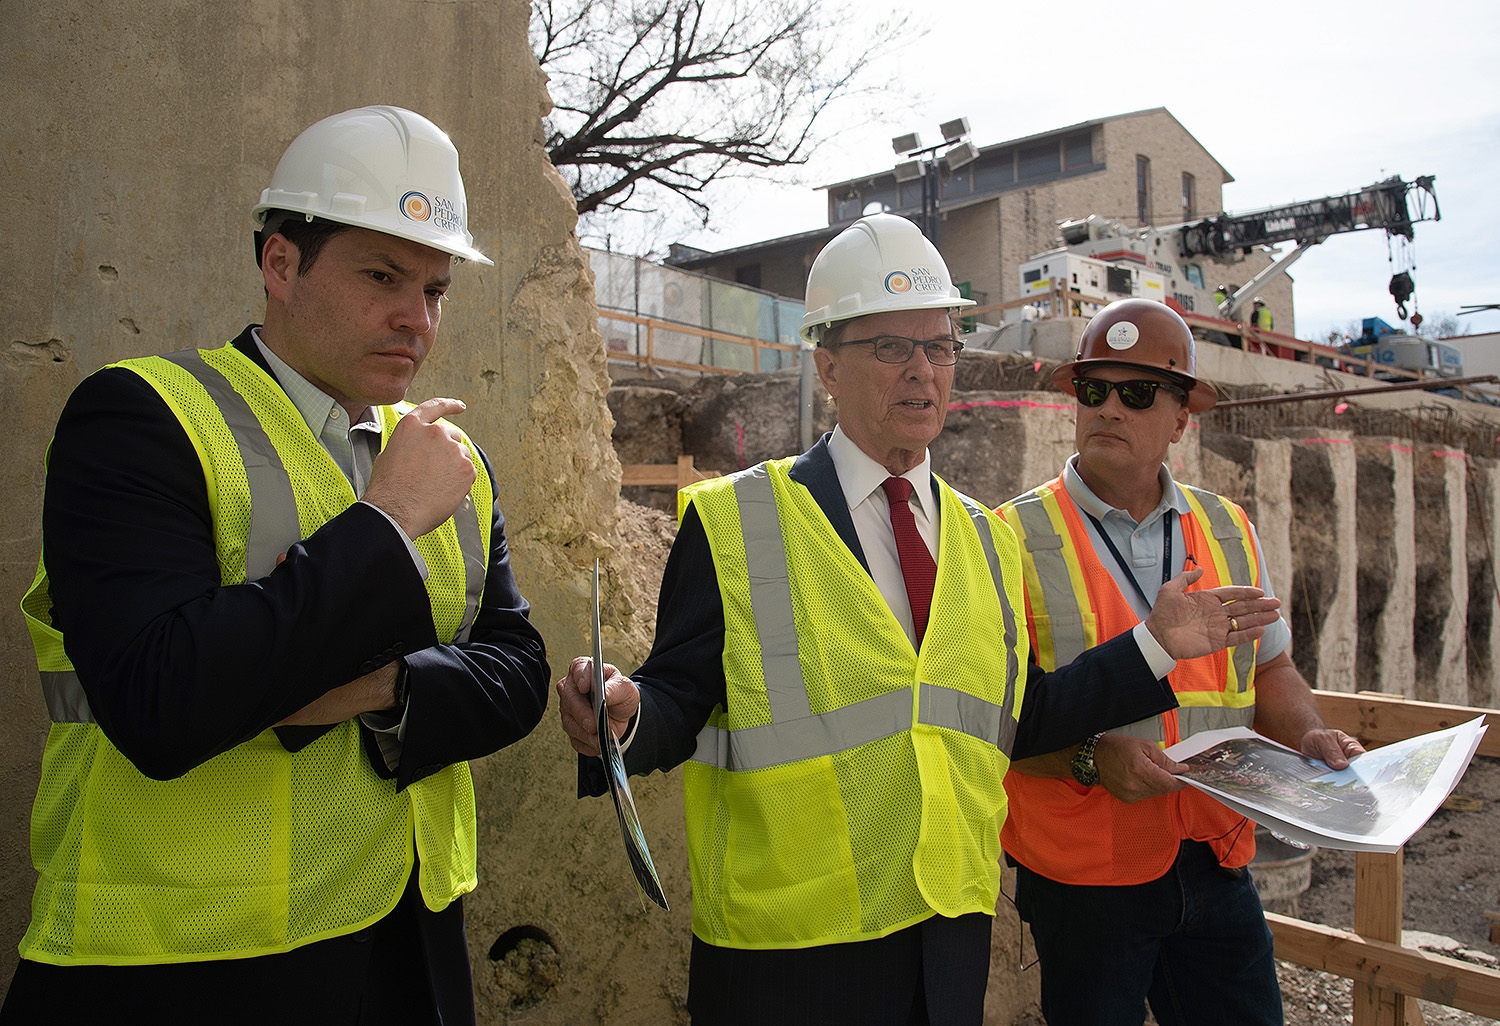 Judge Nelson Wolff (center) speaks at the end of a tour over the second segment of the San Pedro Creek Culture Park Feb. 15. He's flanked by County Commissioner Justin Rodriguez (left) and project manager Kerry Averyt.